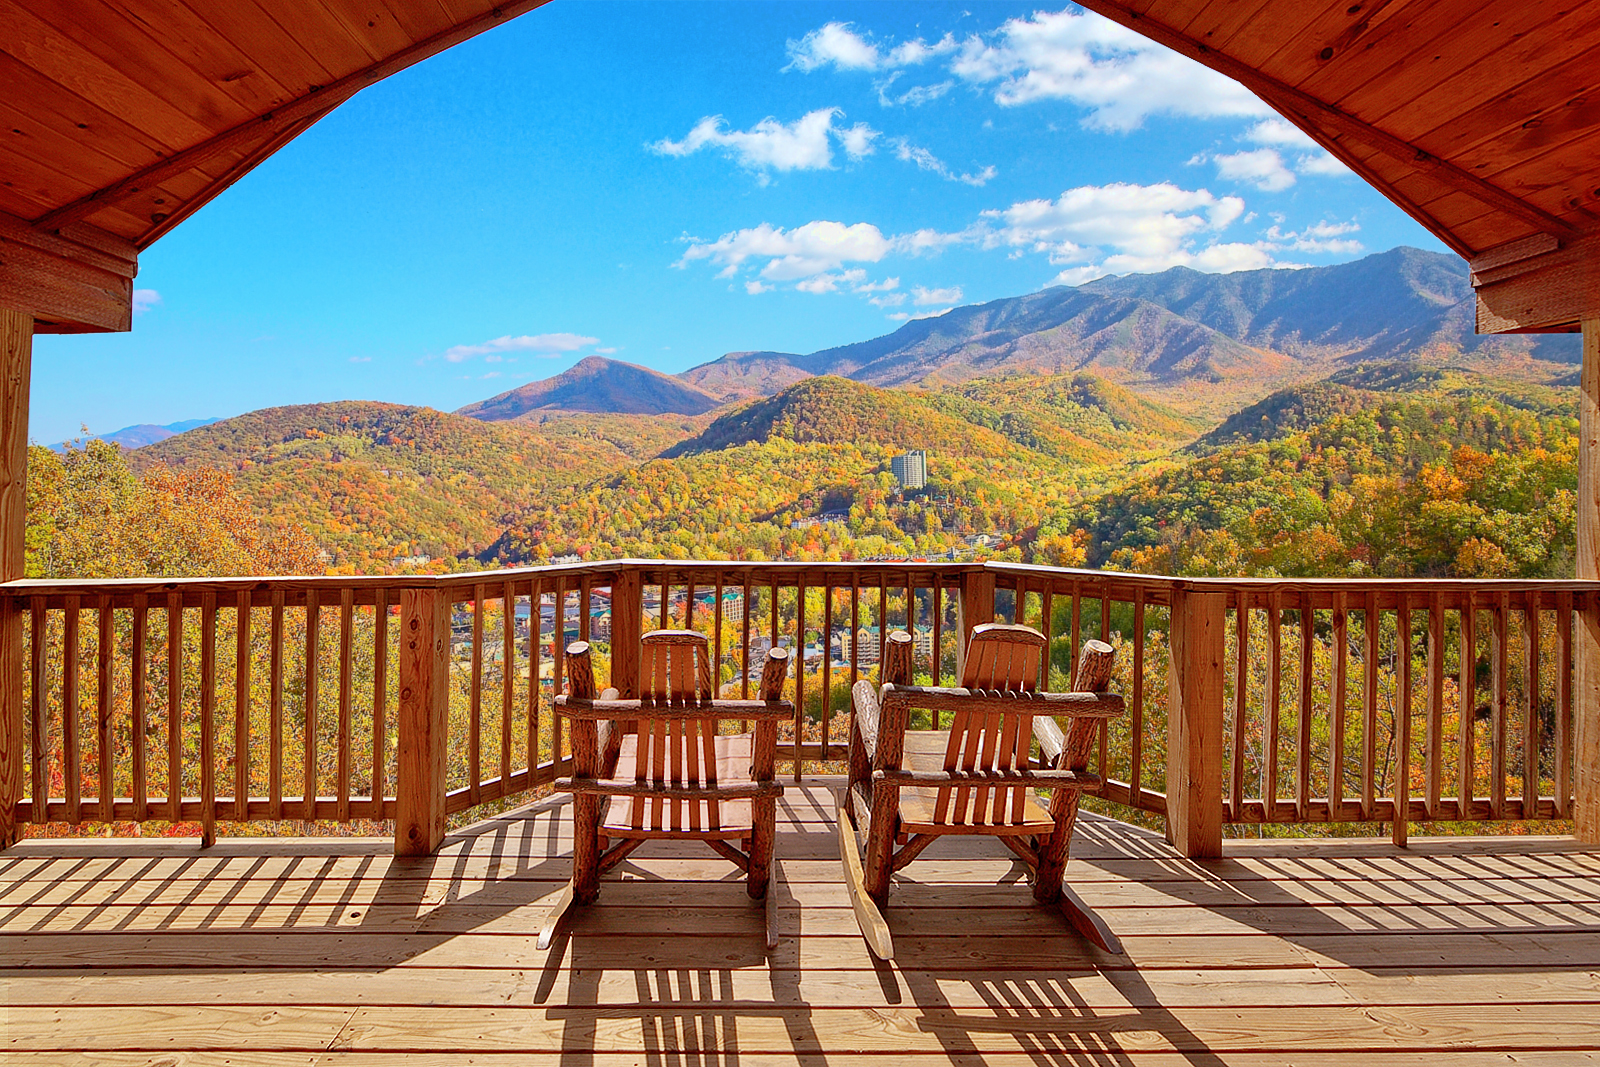 Fall Cabin The Woods Wallpaper Top 5 Beautiful Little Mountain Towns In America